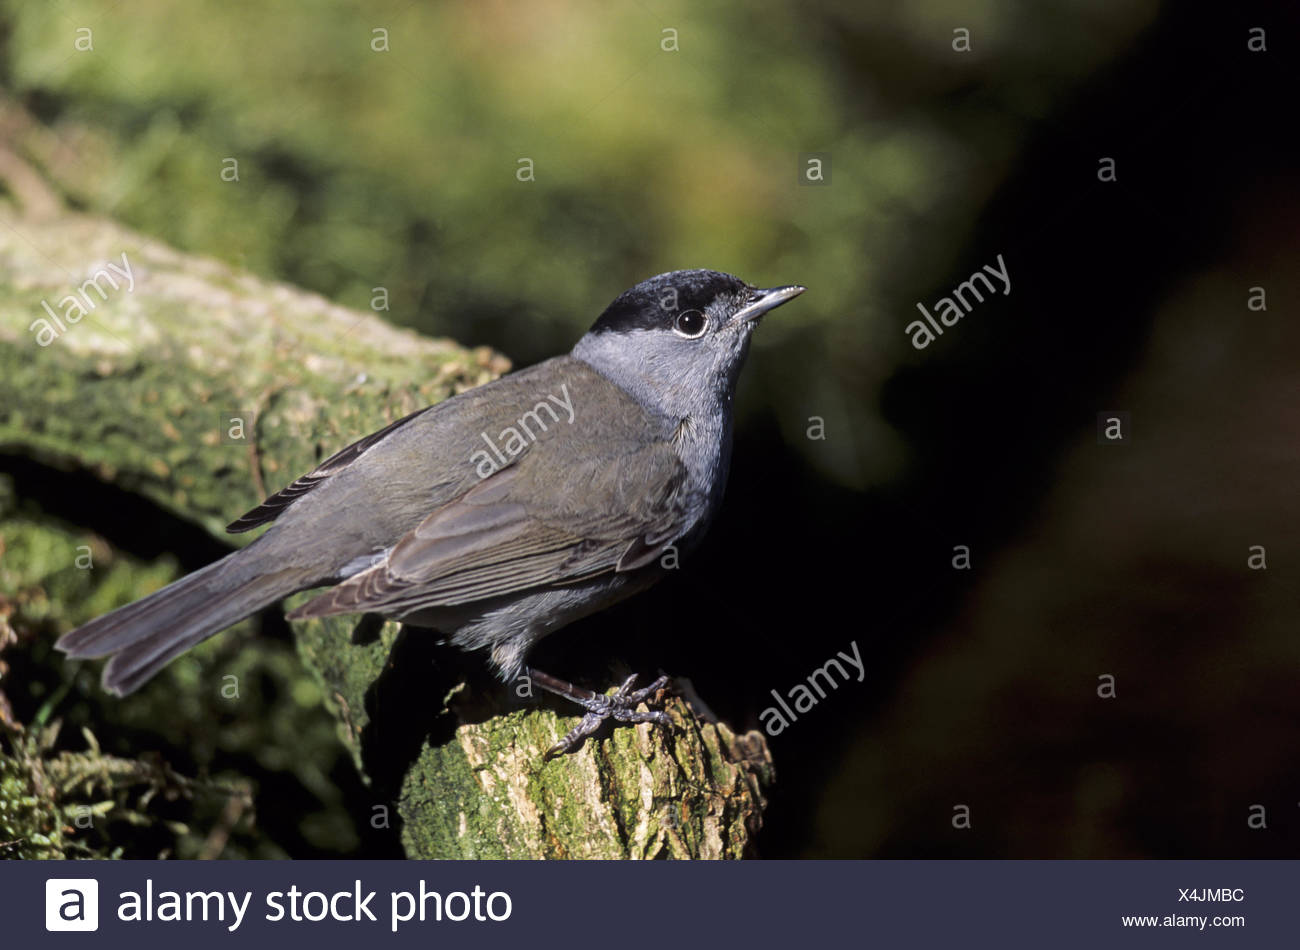 Blackcap adult male with typical black cap - Stock Image